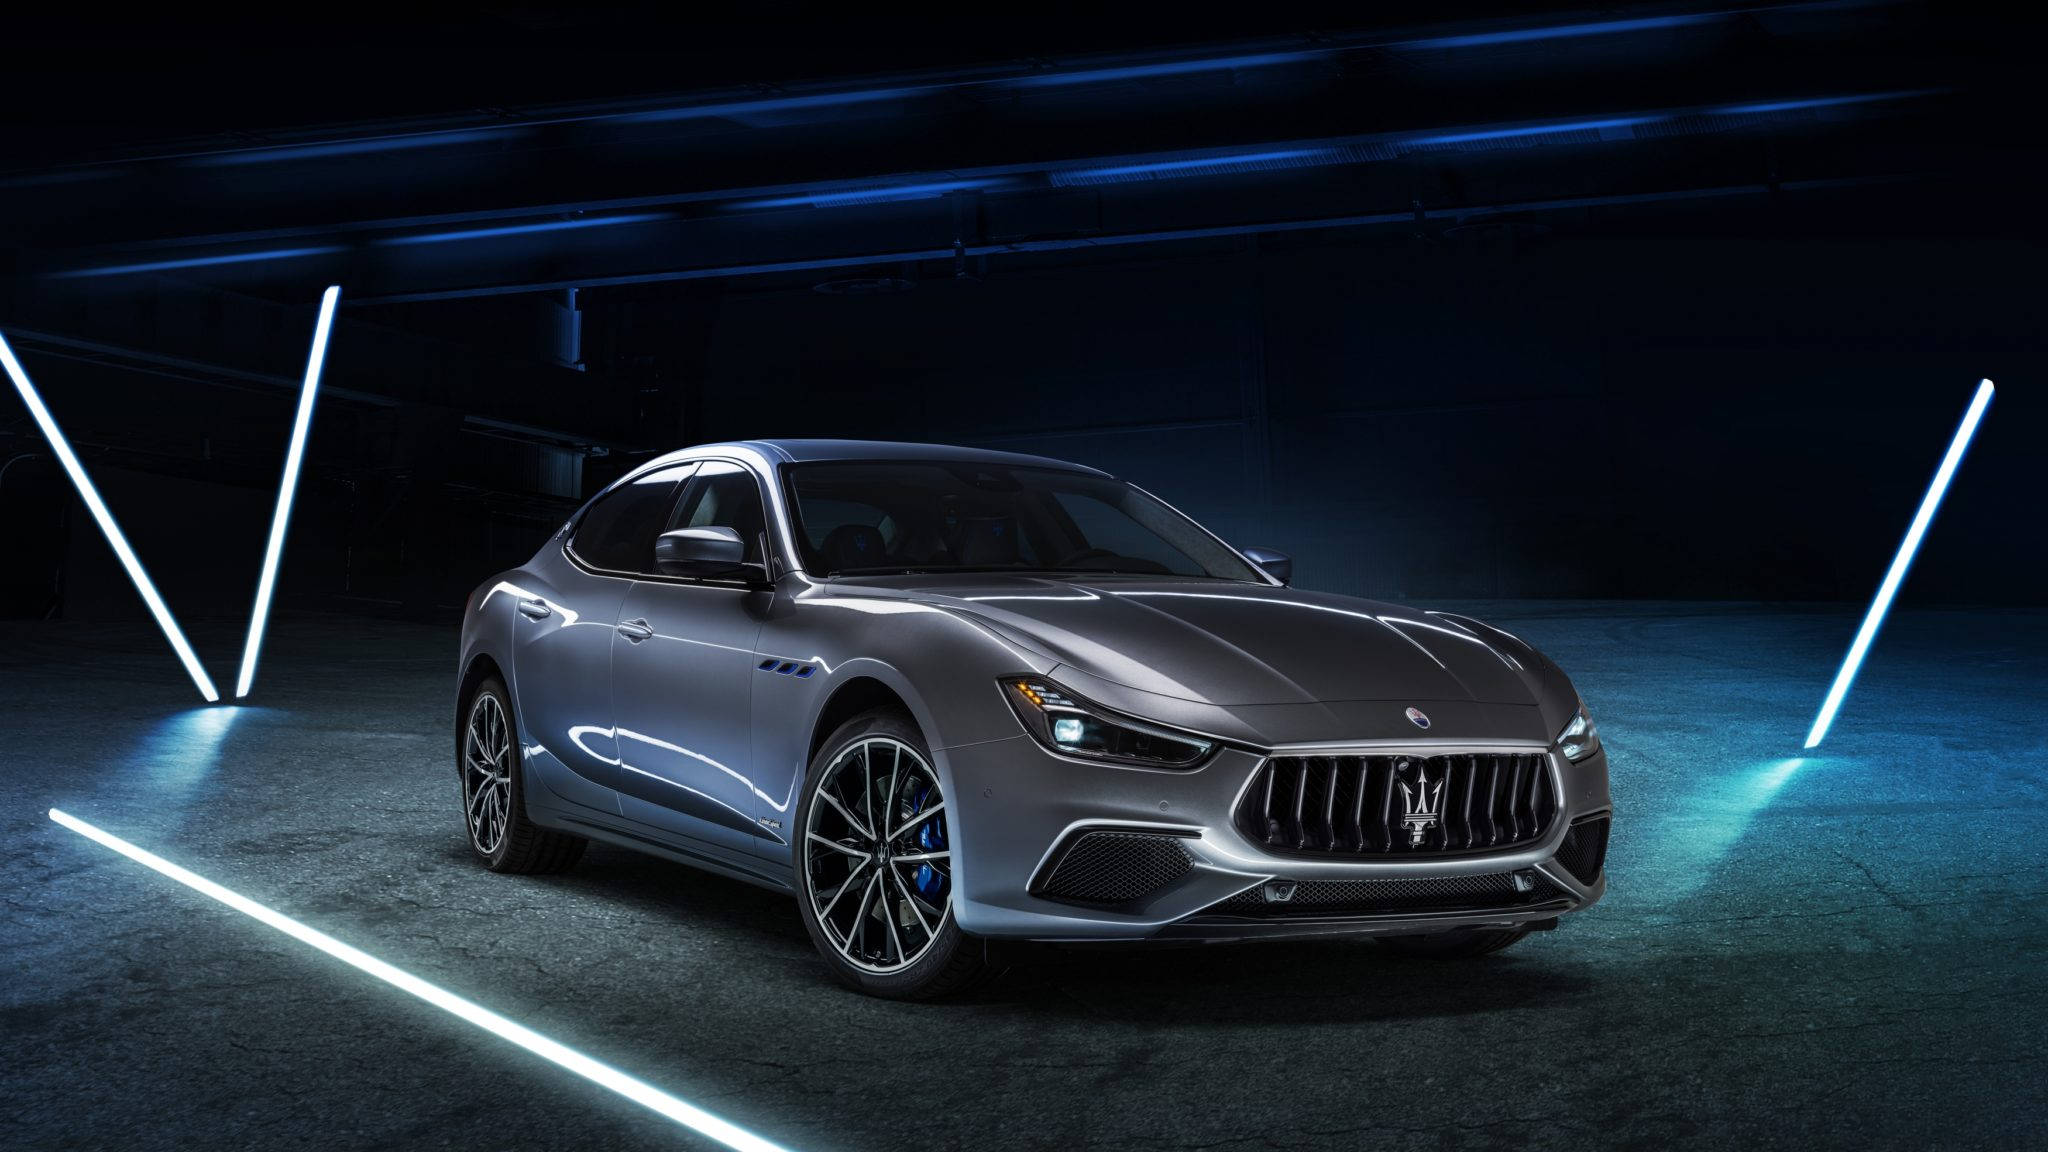 Meet The Ghibli Hybrid, Maserati's First Model To Include An Electric Motor